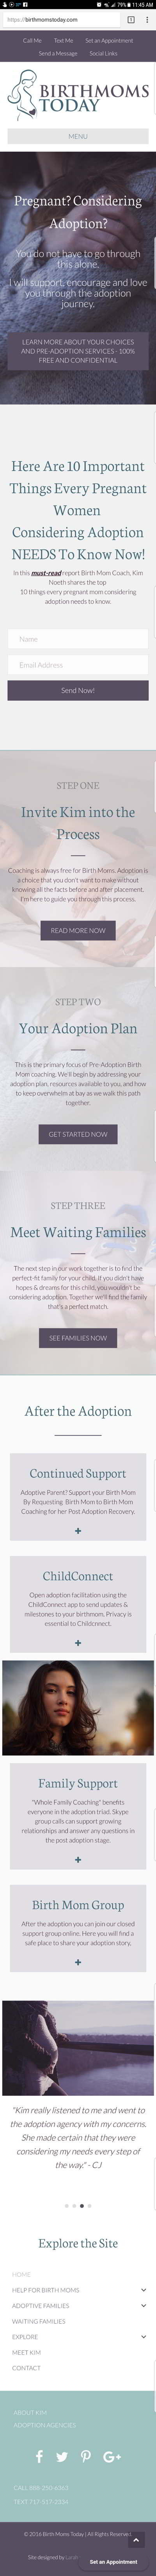 Mobile Preview of Birth Moms Today Website